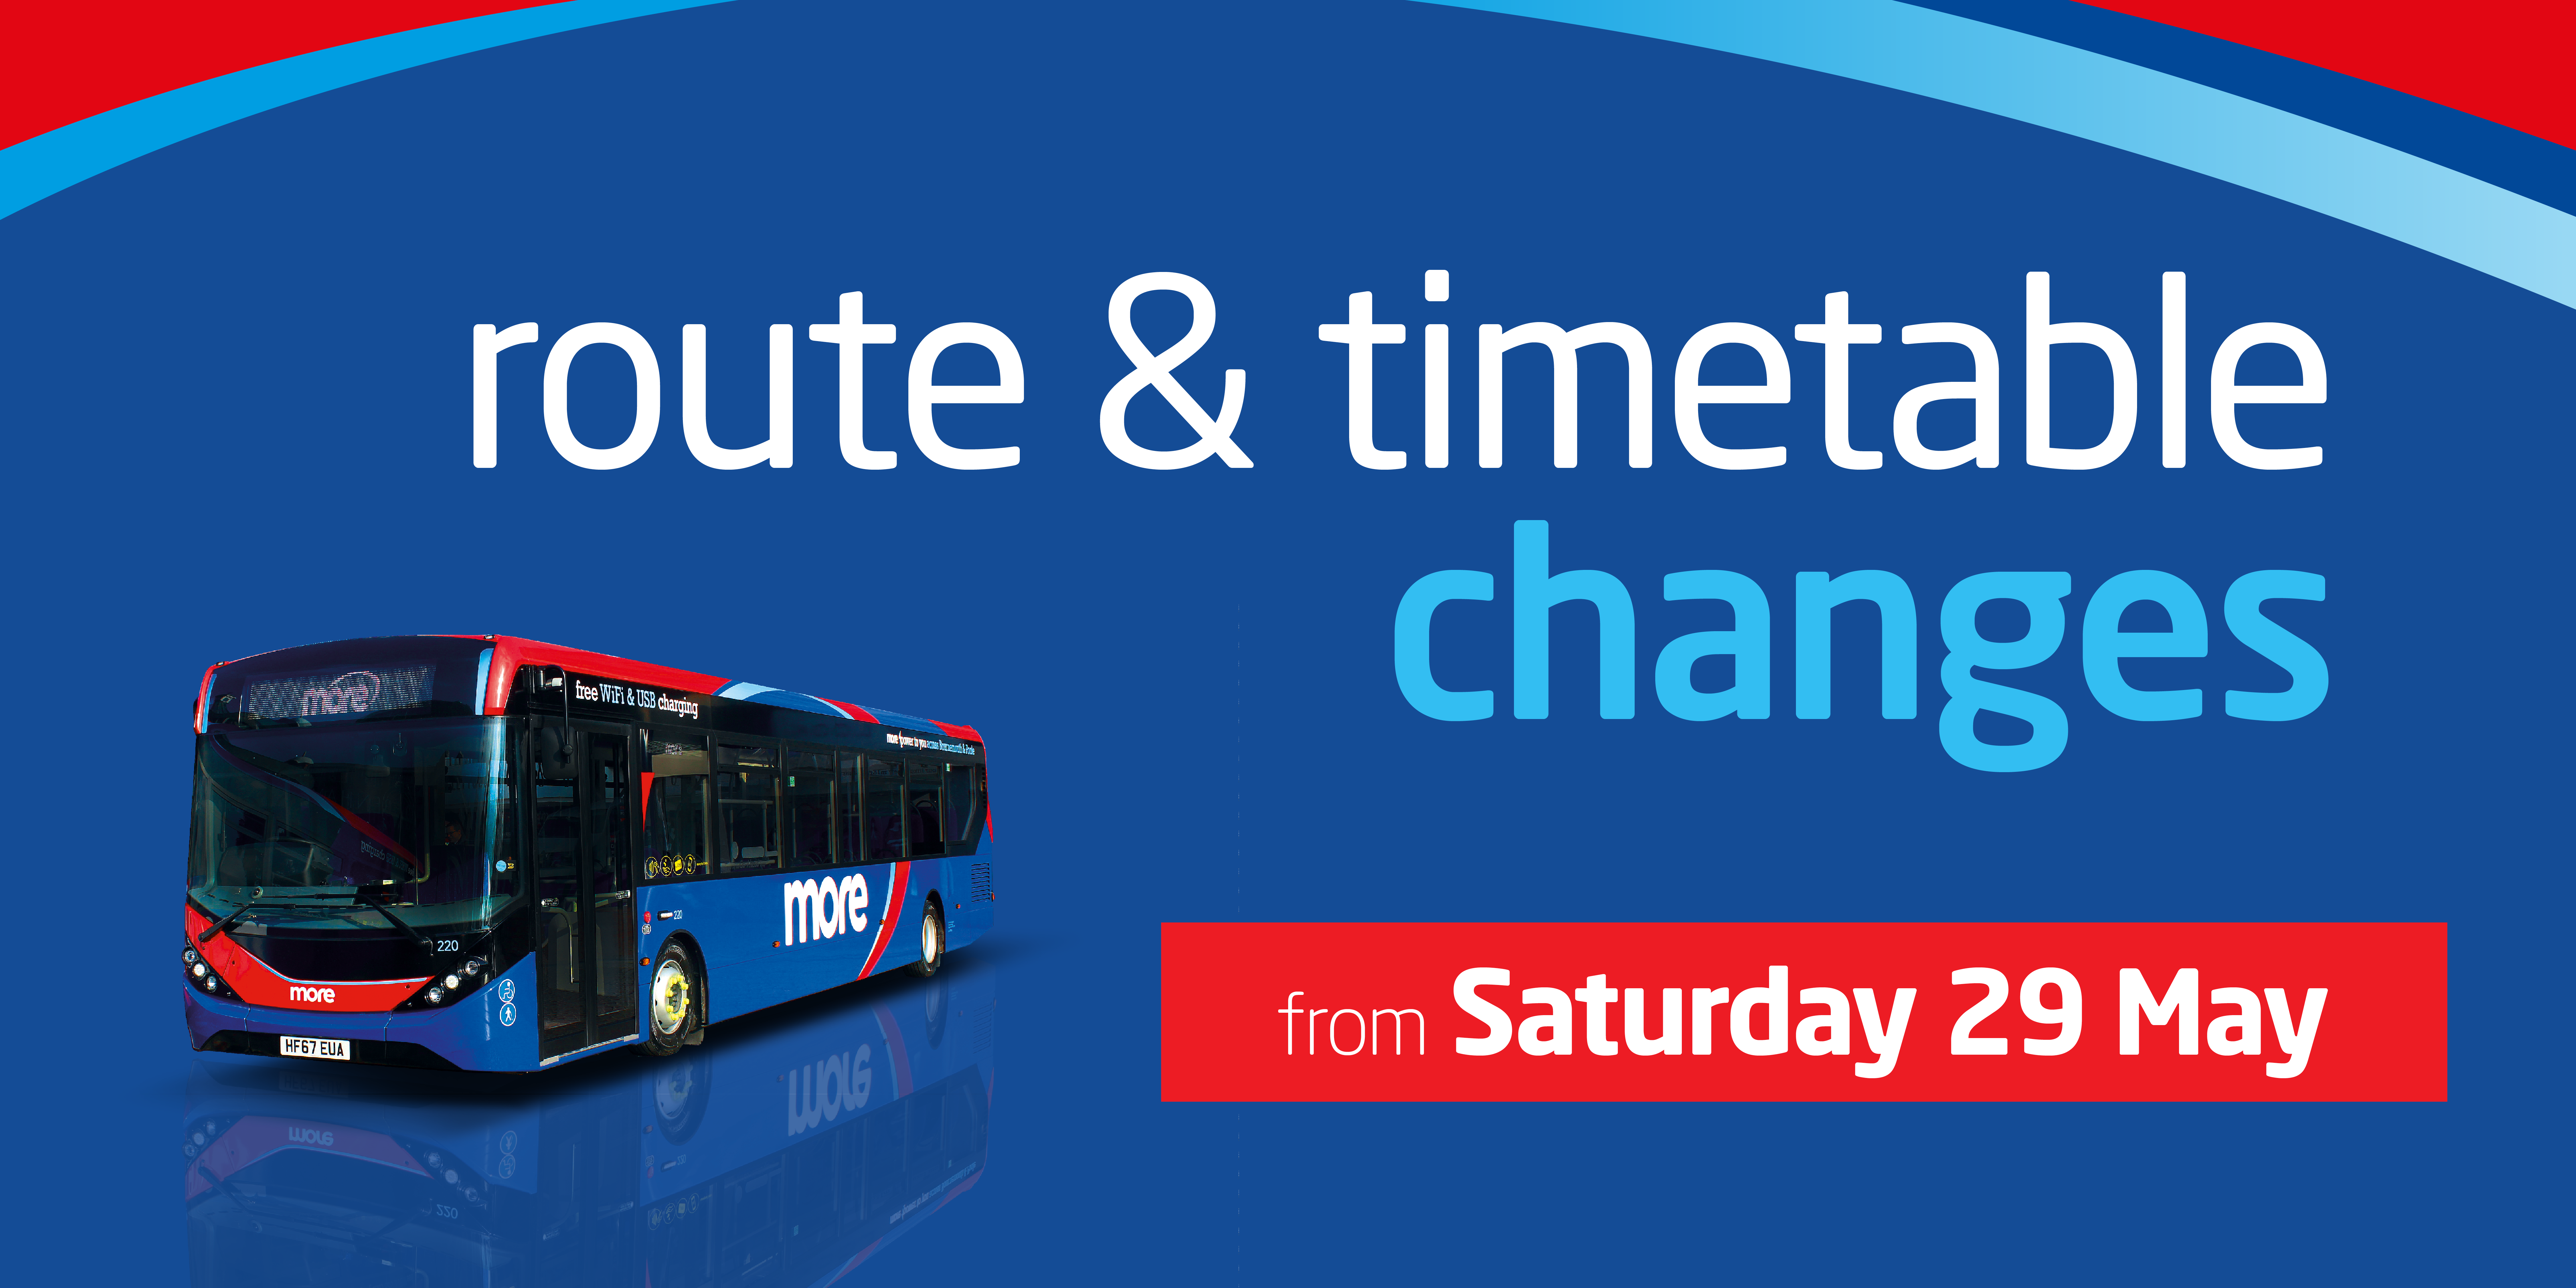 Image of a morebus with text reading 'route and timetable changes from Saturday 29th May'